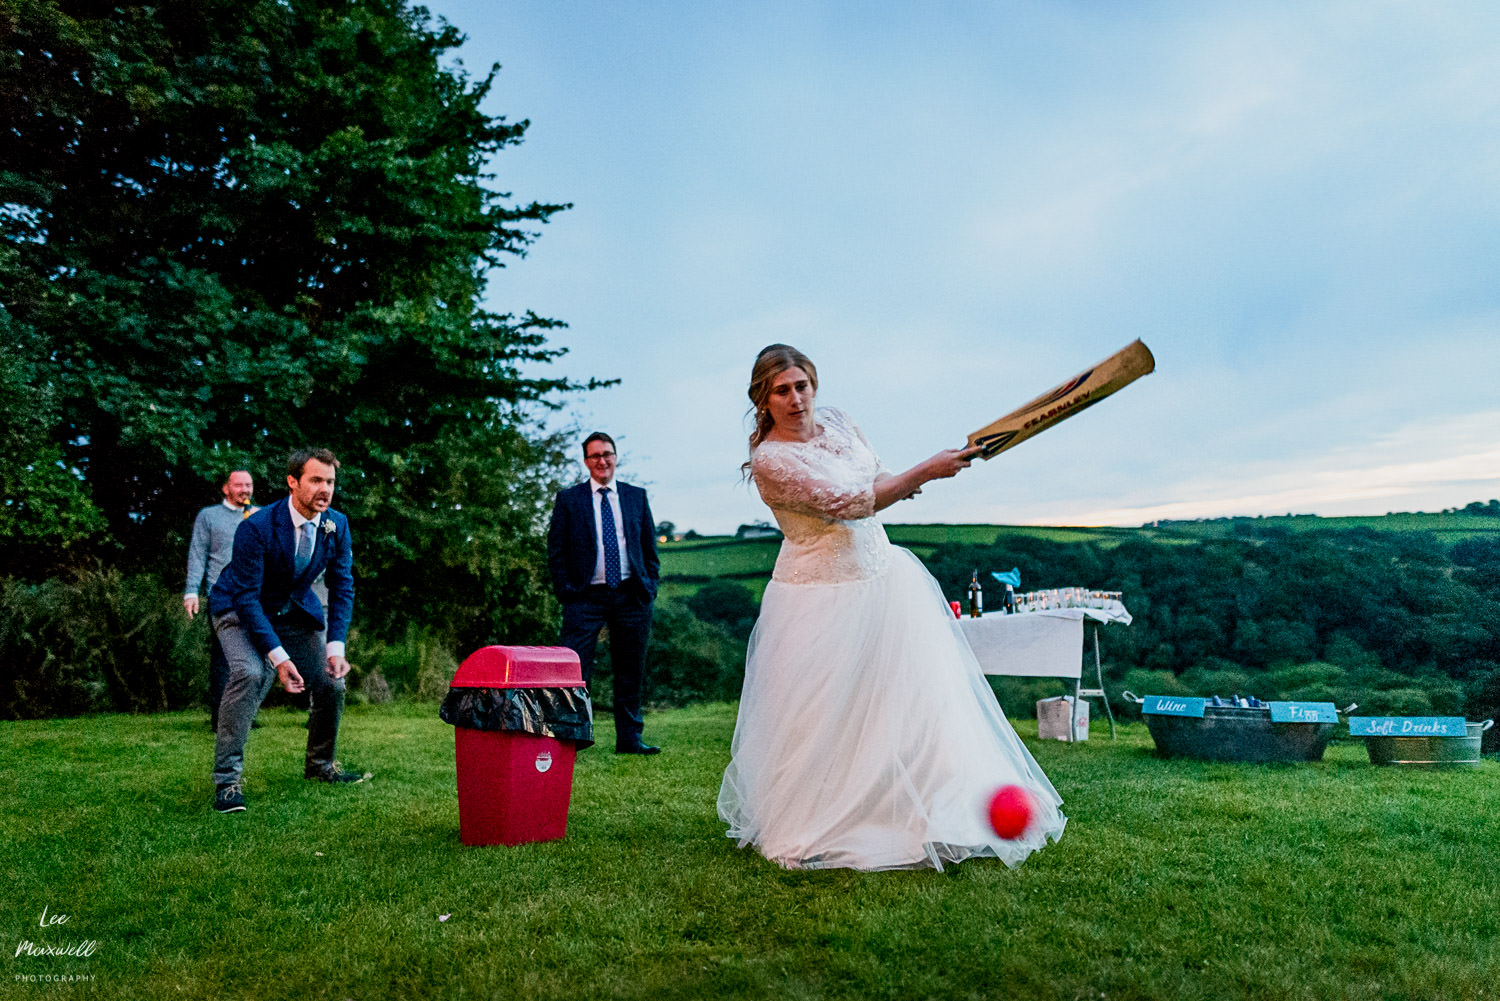 Playing cricket at wedding